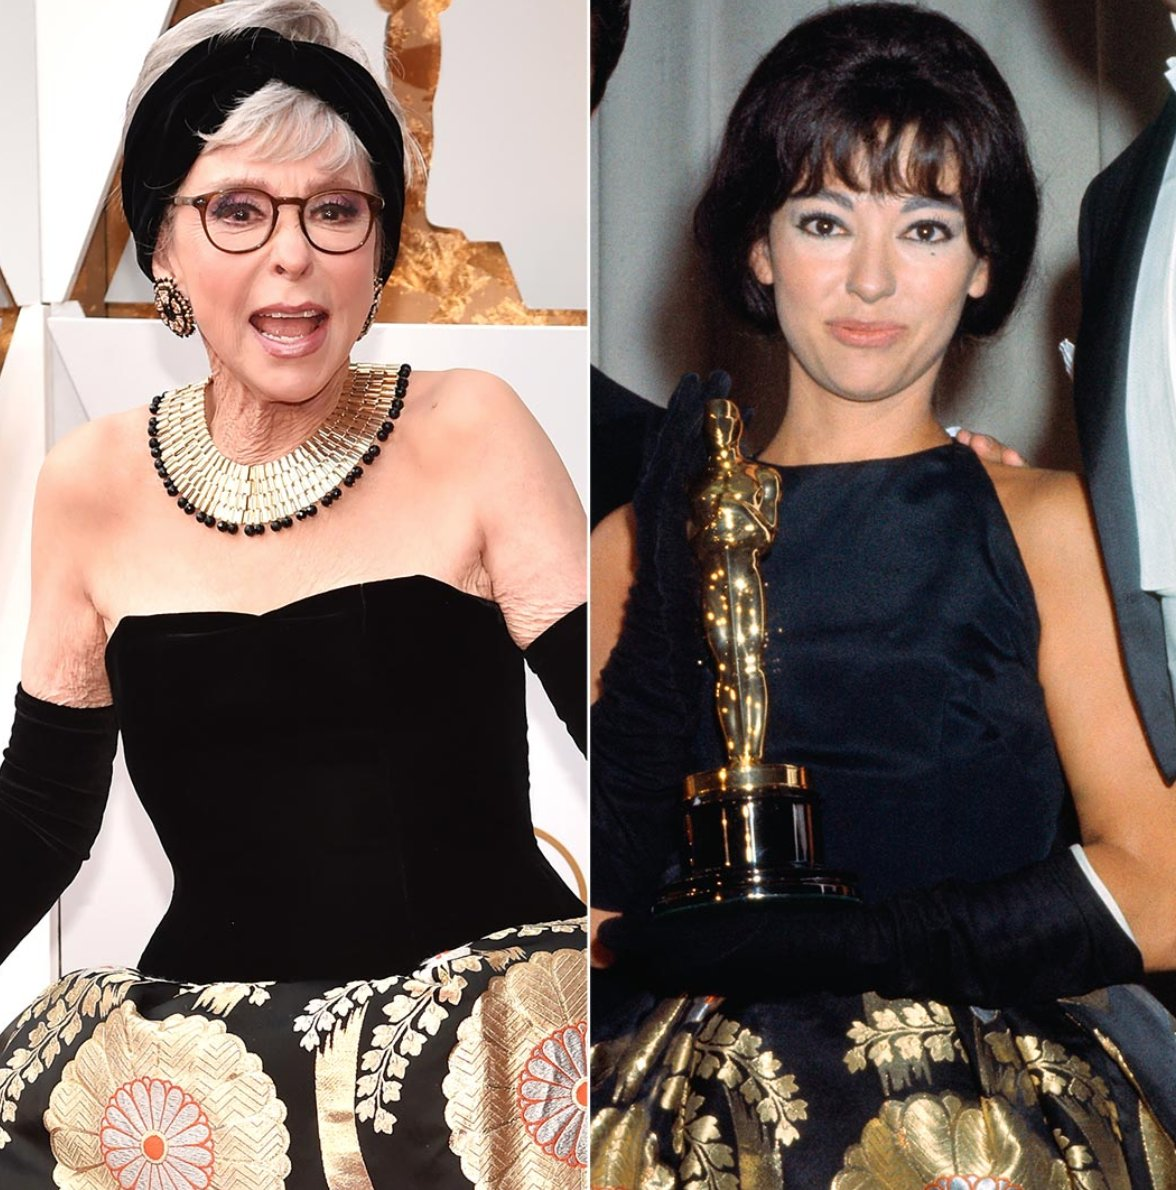 Rita Moreno Recycles Her 1962 Oscars Dress 56 Years Later for the 2018 Academy Awards